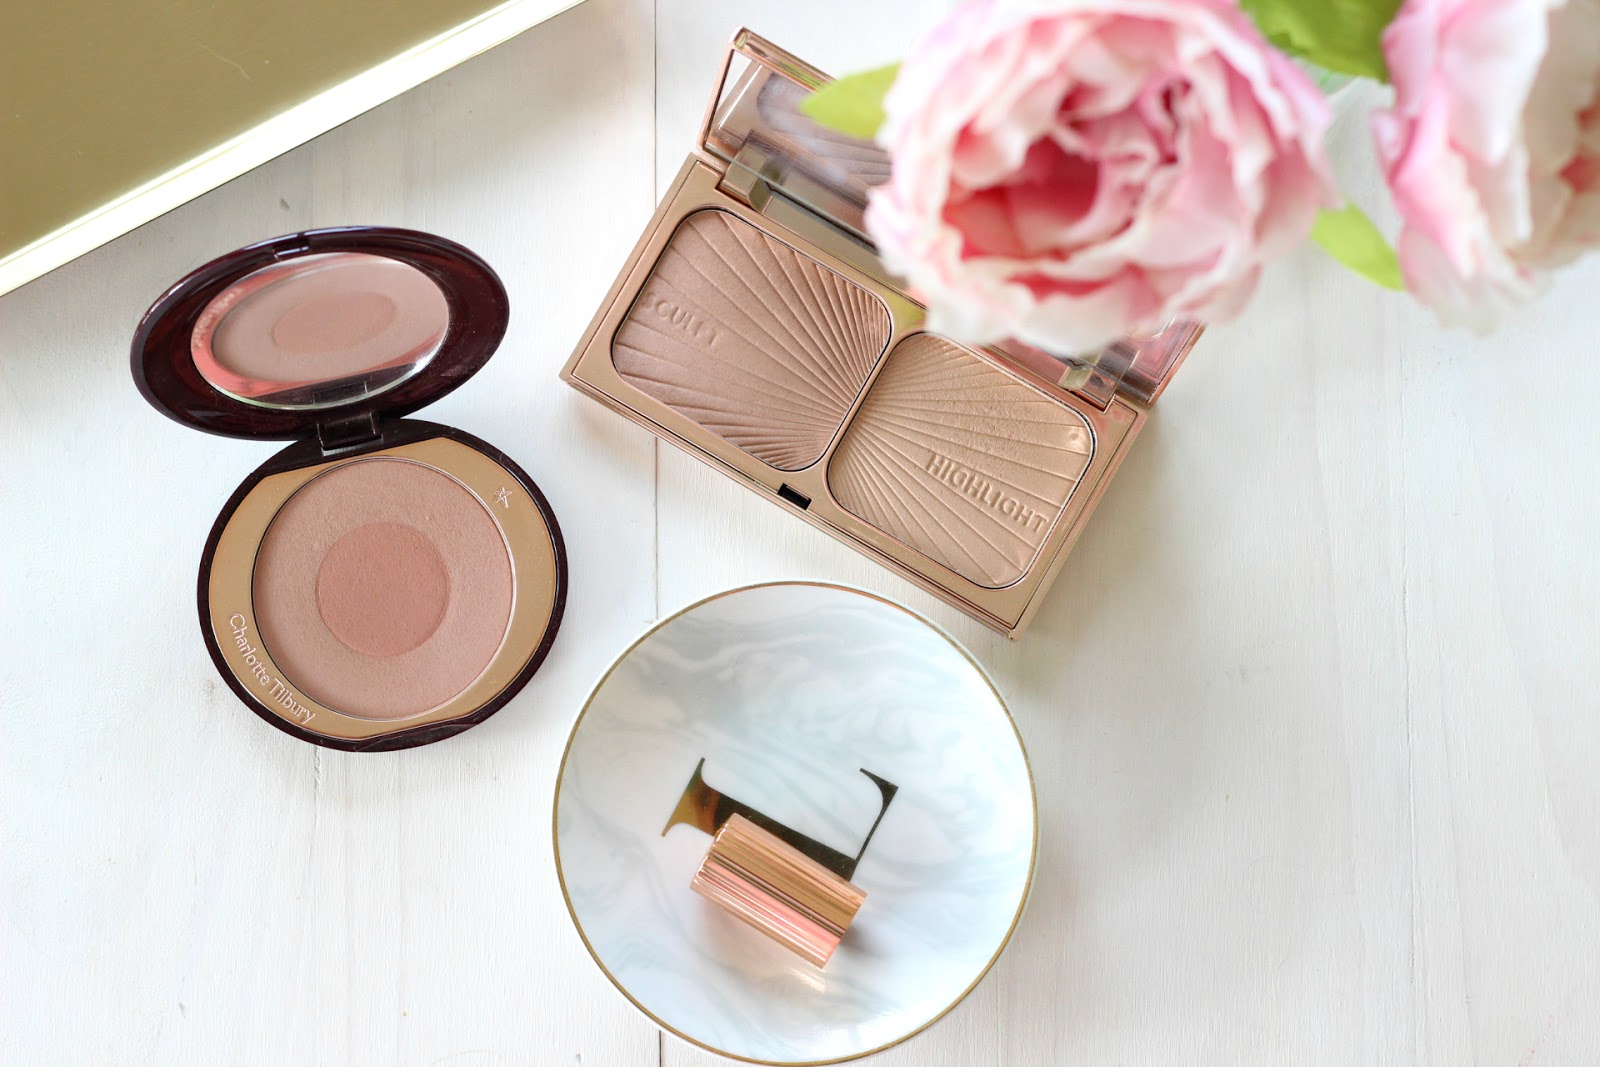 Charlotte Tilbury Face Must Haves